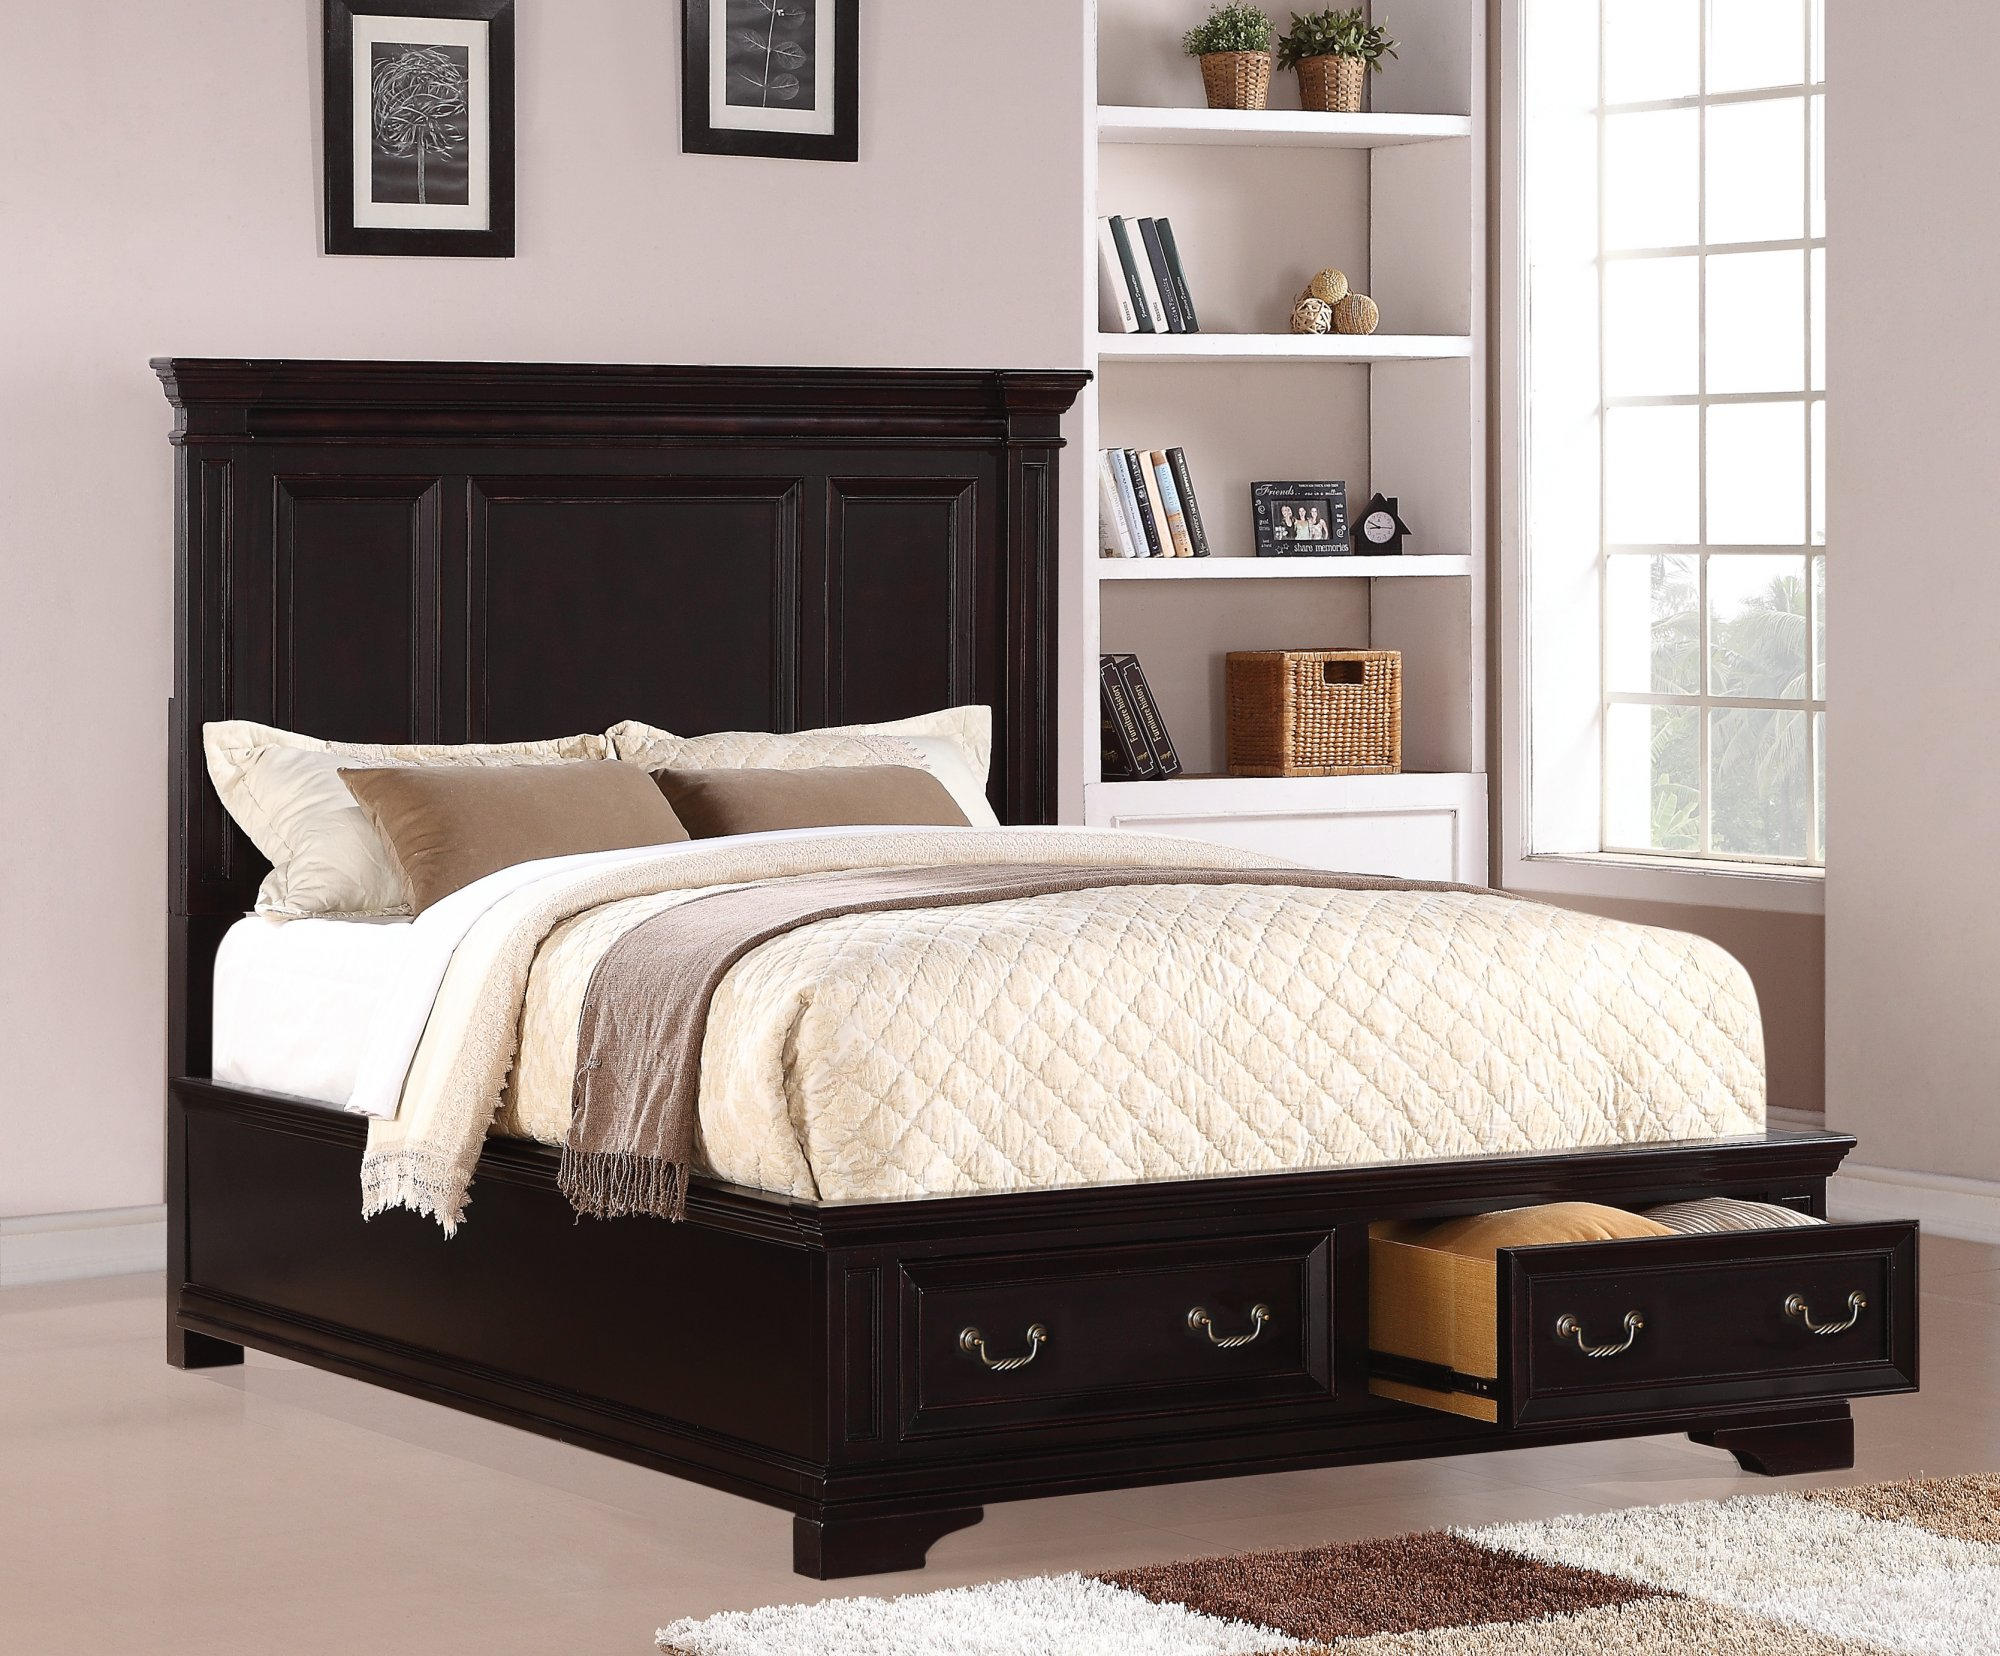 Flexsteel Camberly  Queen Panel Bed with Storage